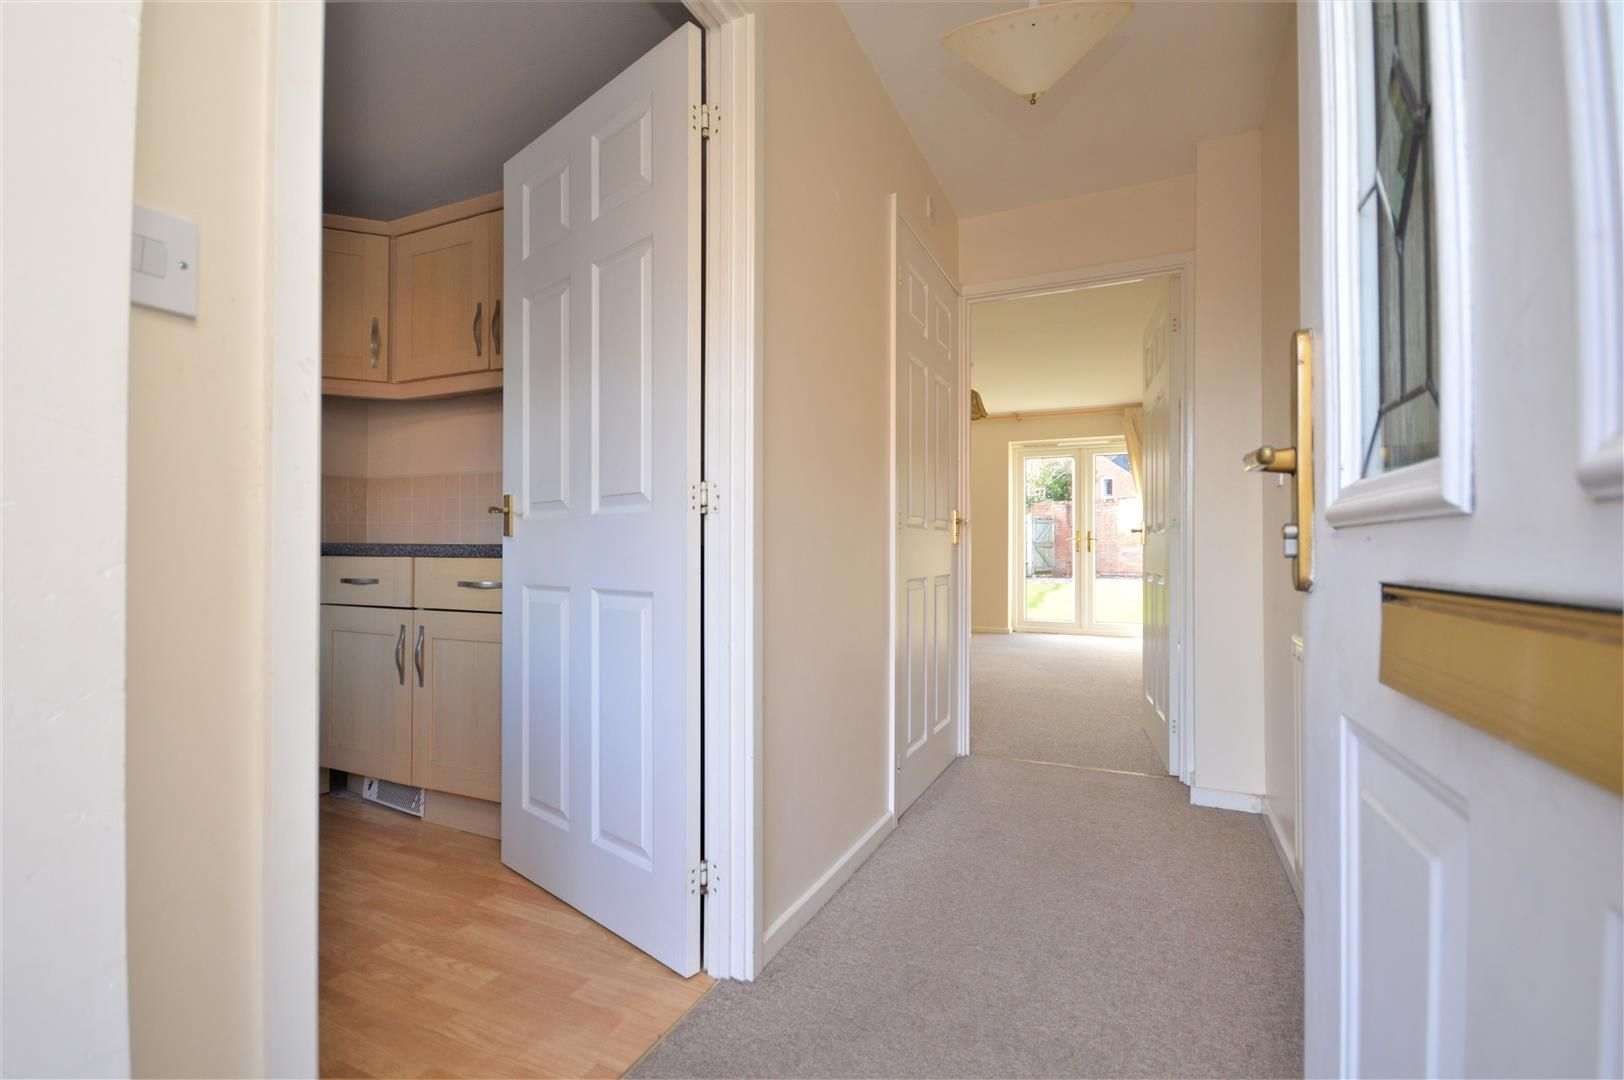 2 bed end-of-terrace for sale  - Property Image 6